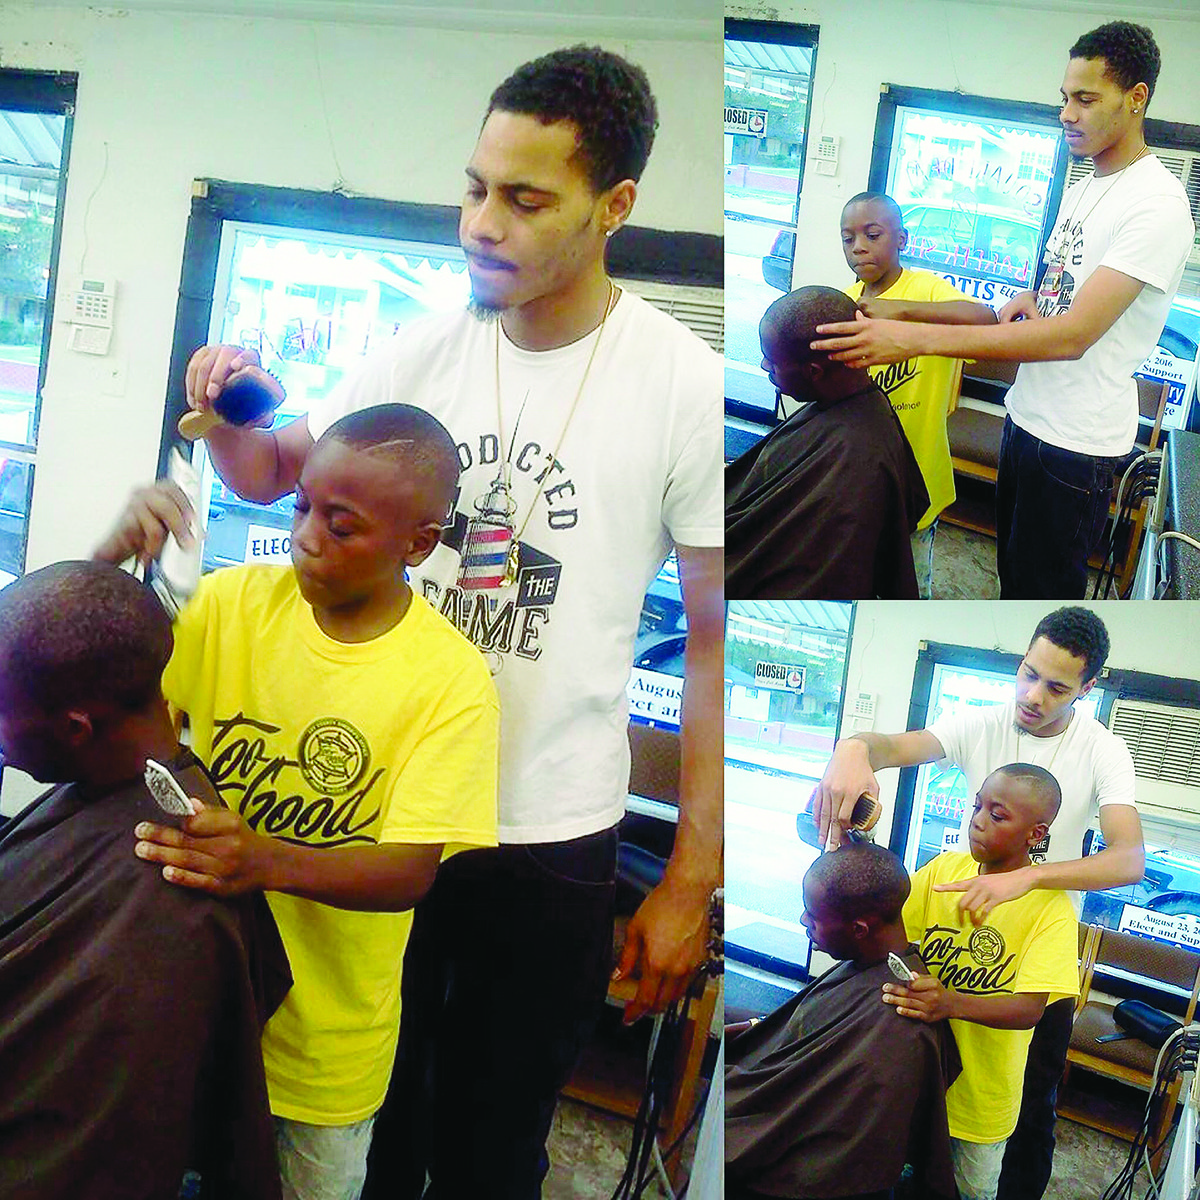 Celebrity barber Jason Walker helps train the next generation of barbers. Walker, who just completed work on his first film production, is passionate about inspiring barbers to see themselves as artists.